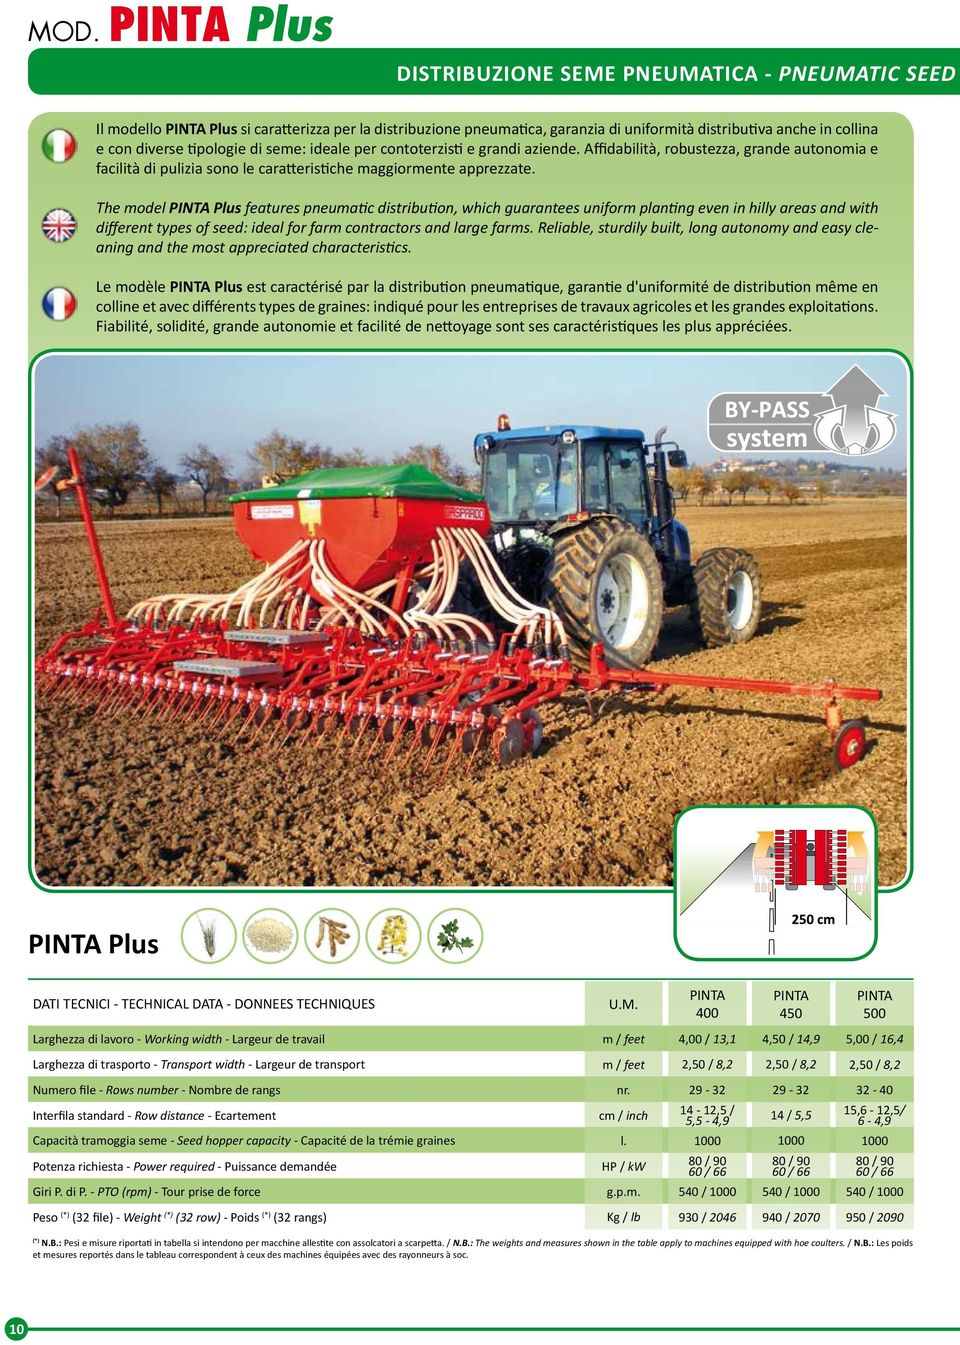 The model PINTA Plus features pneumatic distribution, which guarantees uniform planting even in hilly areas and with different types of seed: ideal for farm contractors and large farms.